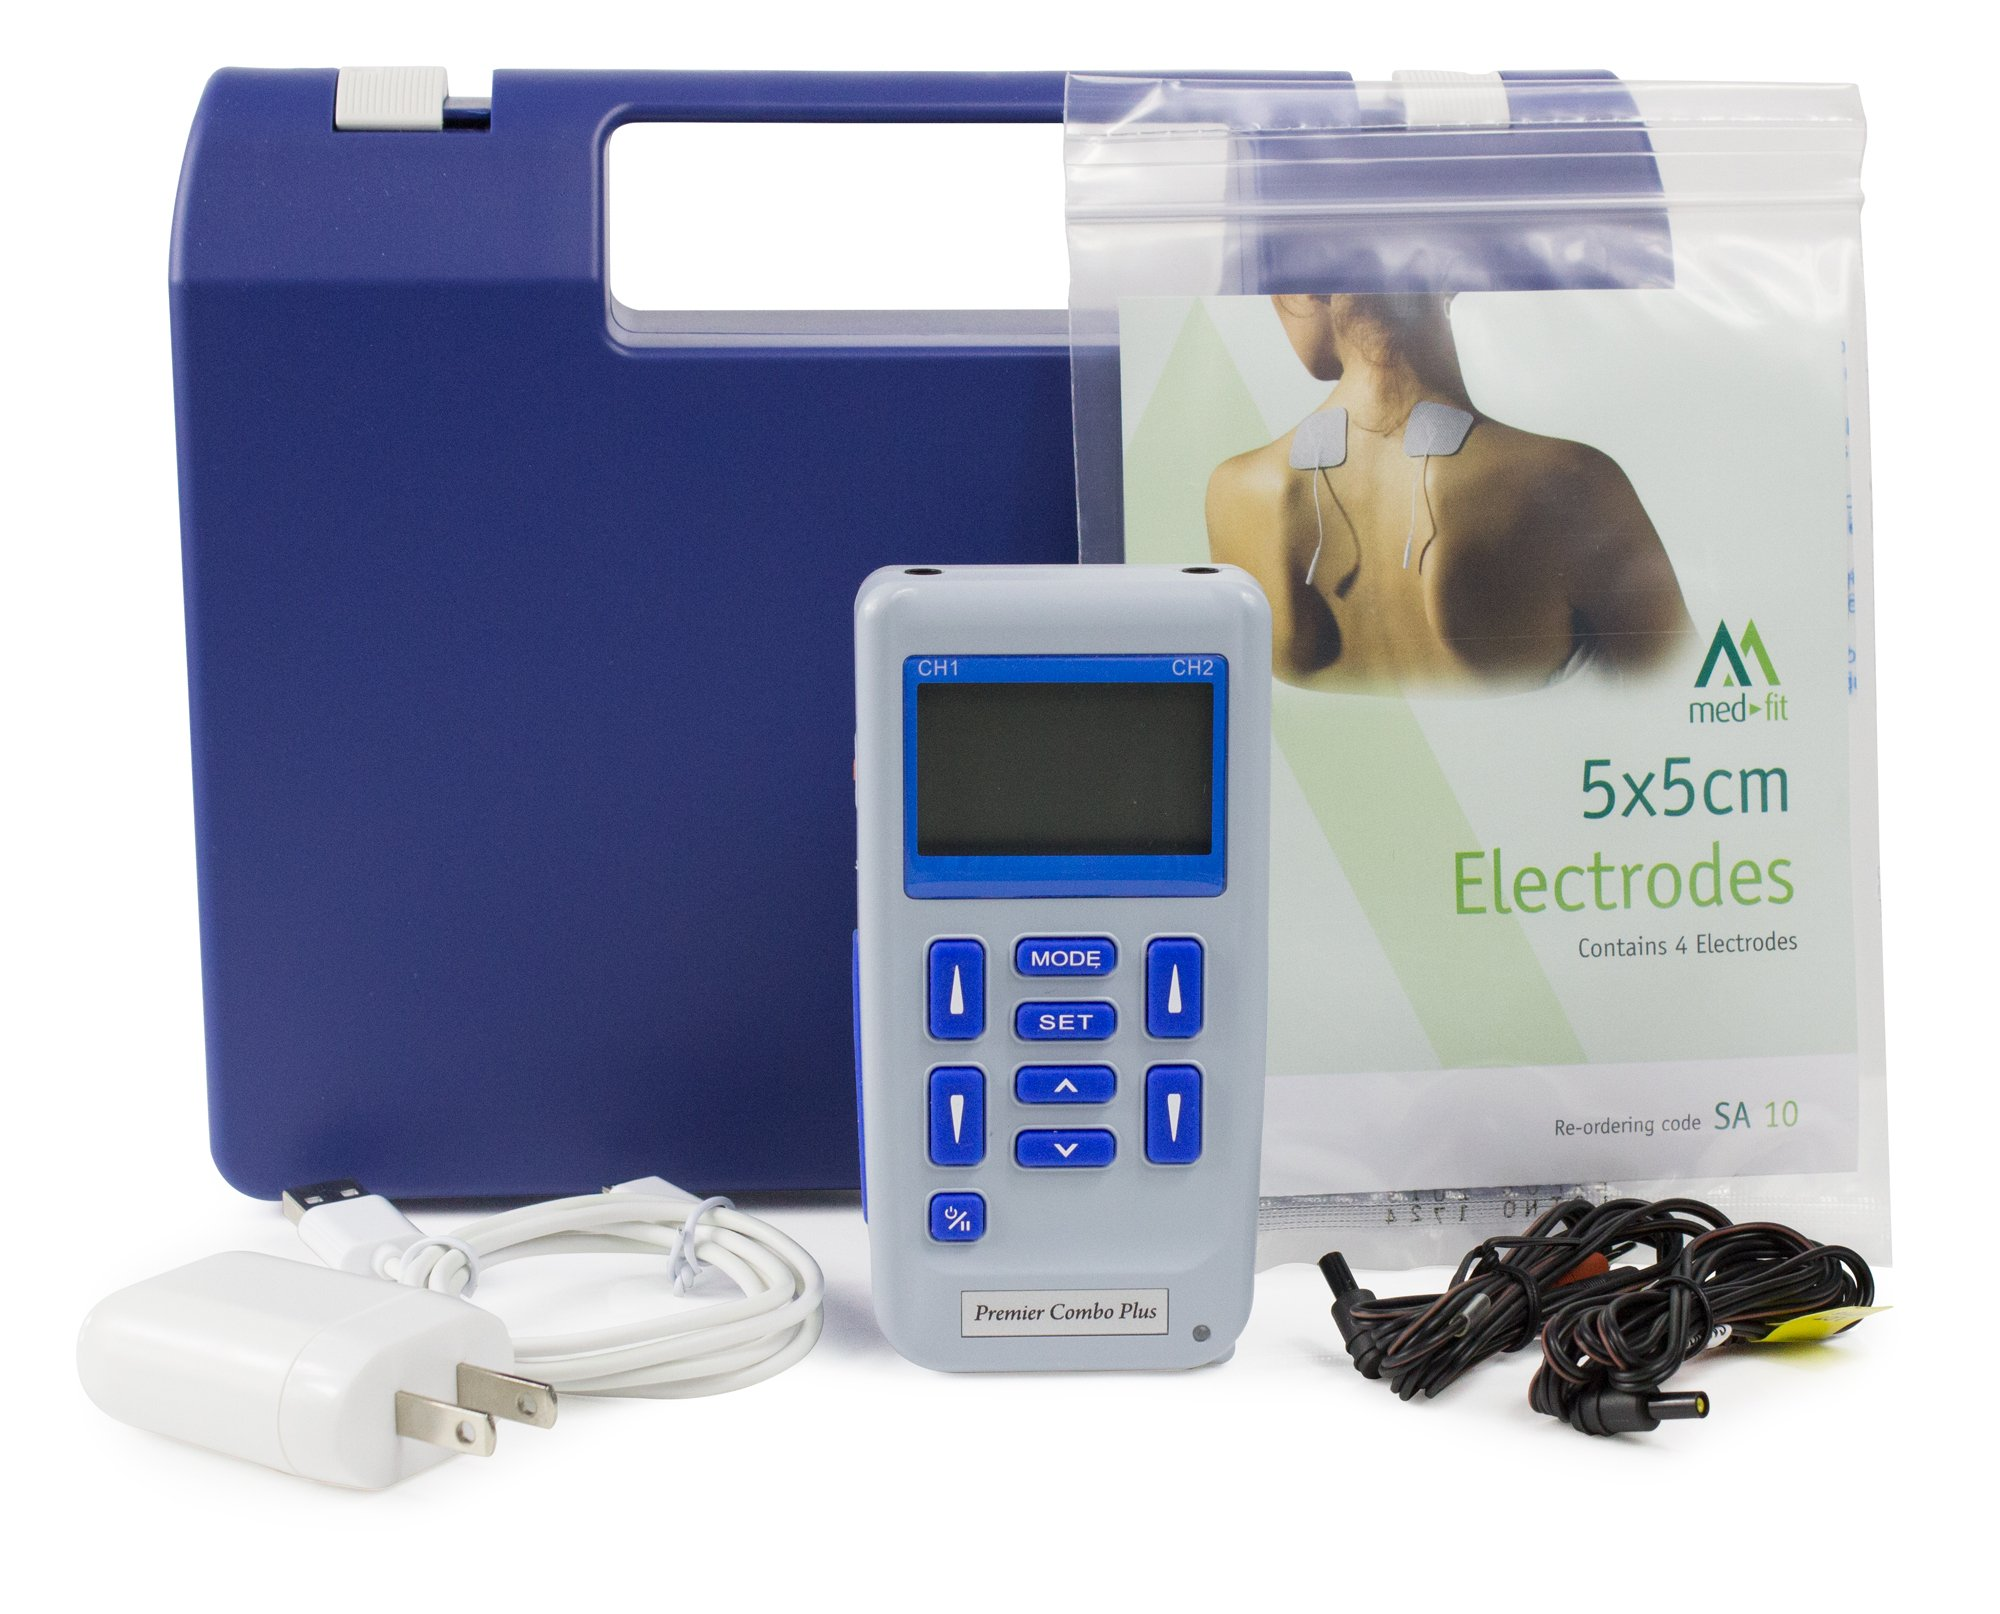 Premier Plus Rechargeable TENS Machine for Pain Relief - Combined with Muscle & Neuromuscular Simulation - 24 clinically Approved programmes by Med-Fit